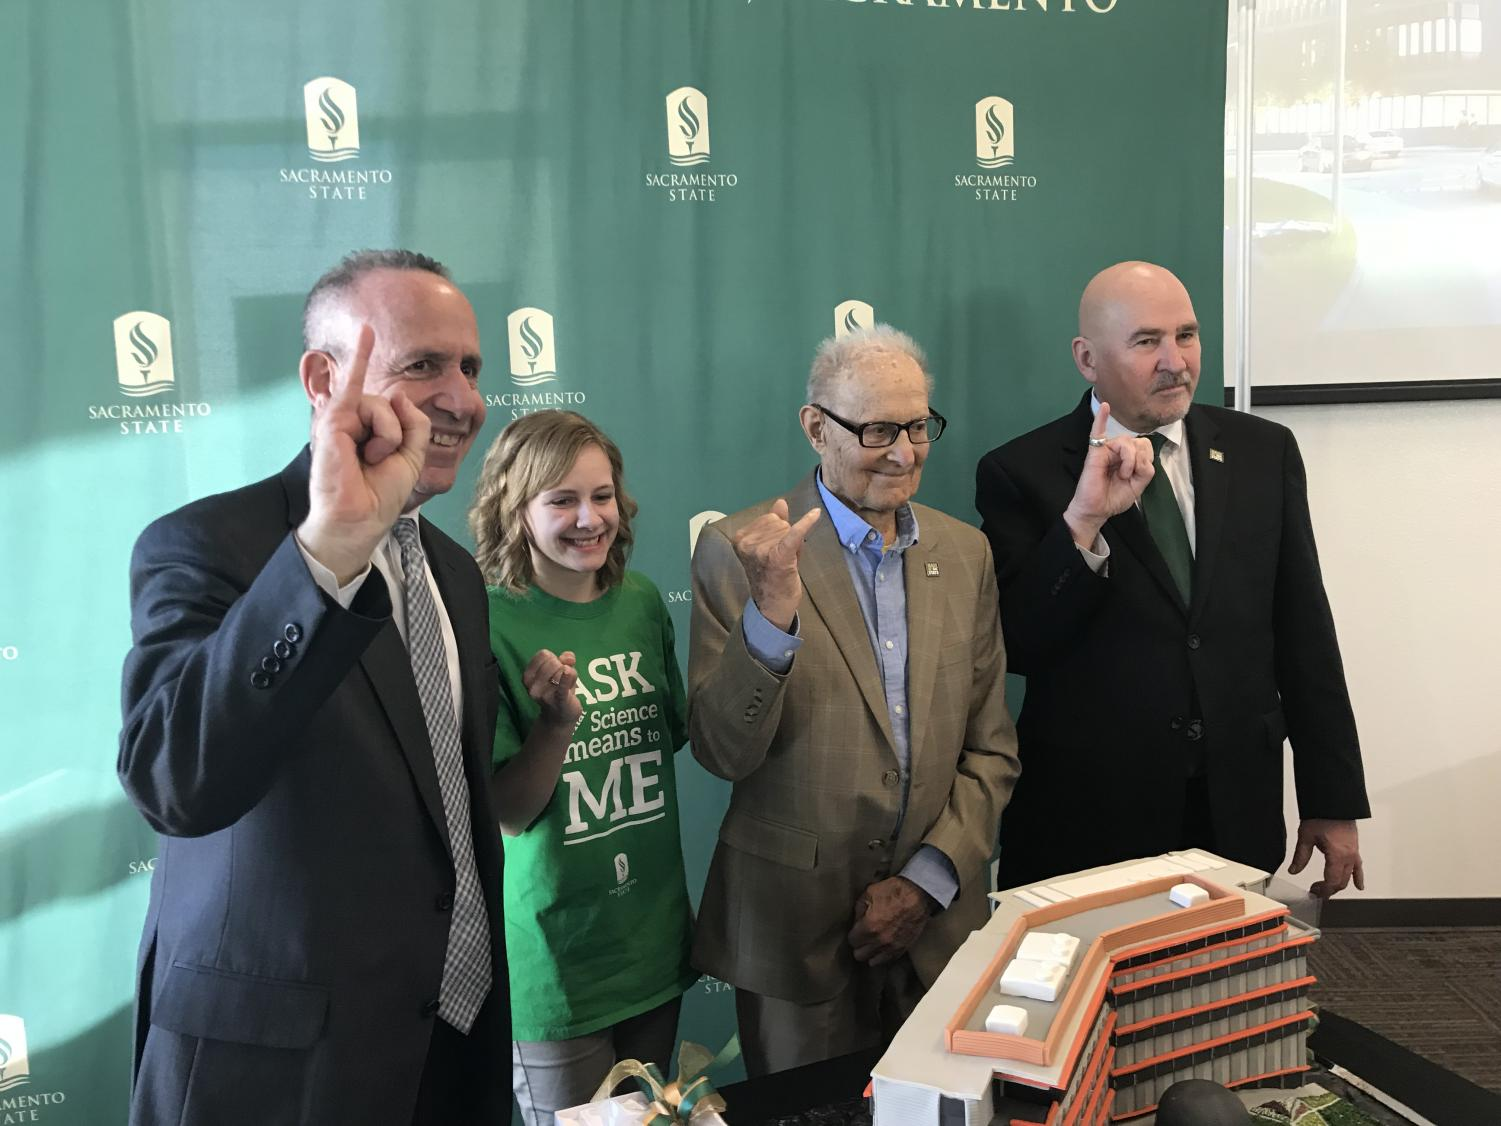 From left, Sacramento Mayor Darrell Steinberg, Elizabeth Gabler, Ernest Tschannen and President Robert Nelsen are on hand for Tschannen's donation to Sacramento State on Feb. 16. Tschannen gave a $9 million donation, the highest in Sac State history, which will go toward paying for part of the Science II construction project.